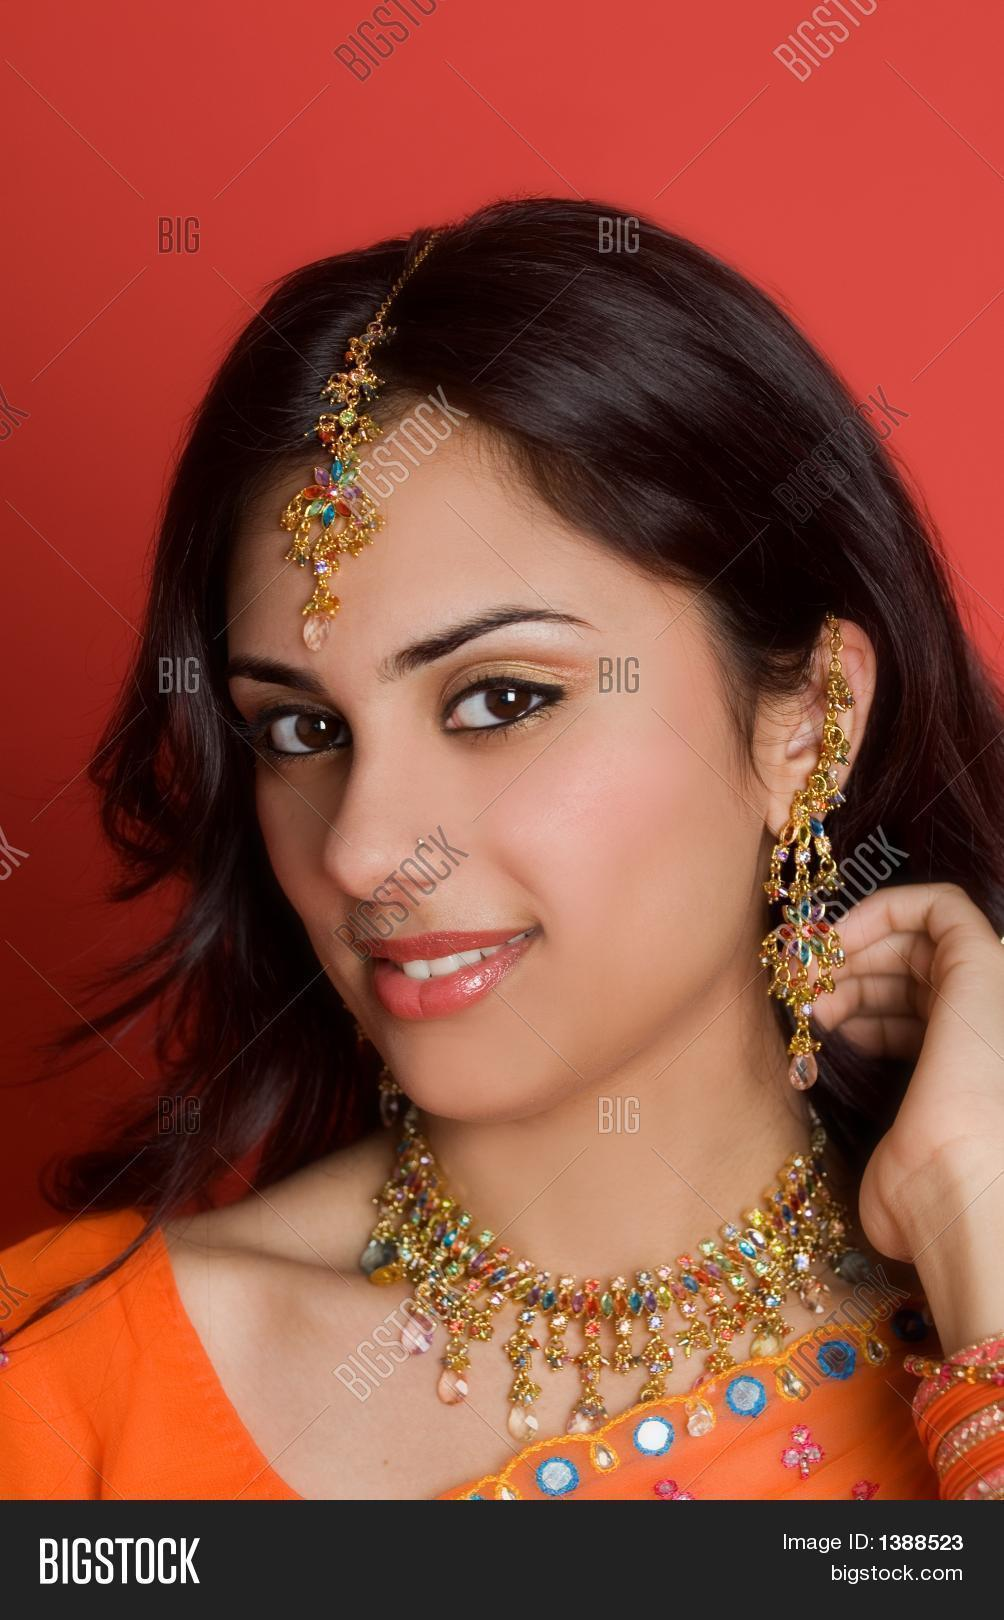 mora hindu single women Photo gallery we have thousands of photos to inspire you while you plan your dream indian wedding sort our photo gallery by most recent or most popular photos.